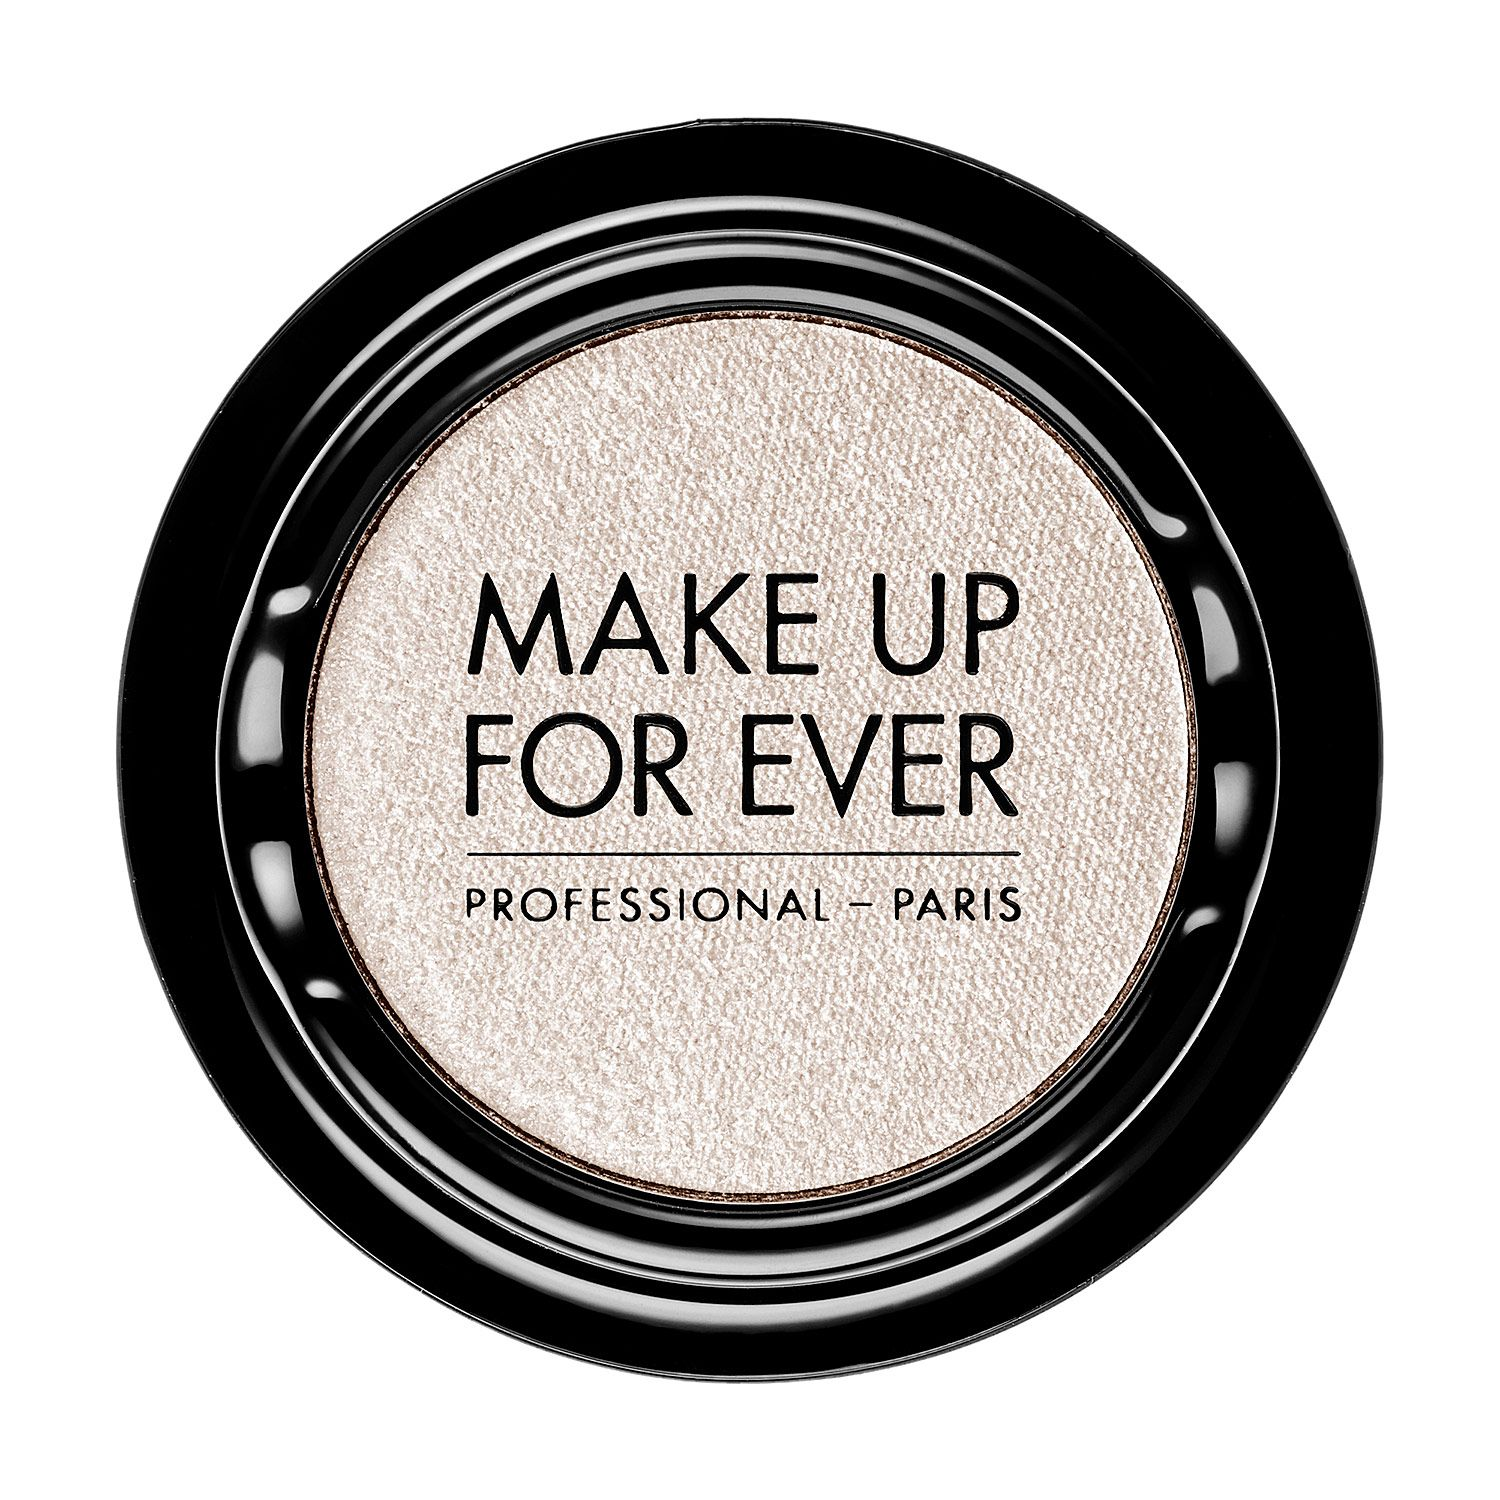 MAKE UP FOR EVER Artist Shadows deliver highly-blendable, gel to powder colors that are sure to make any look pop.